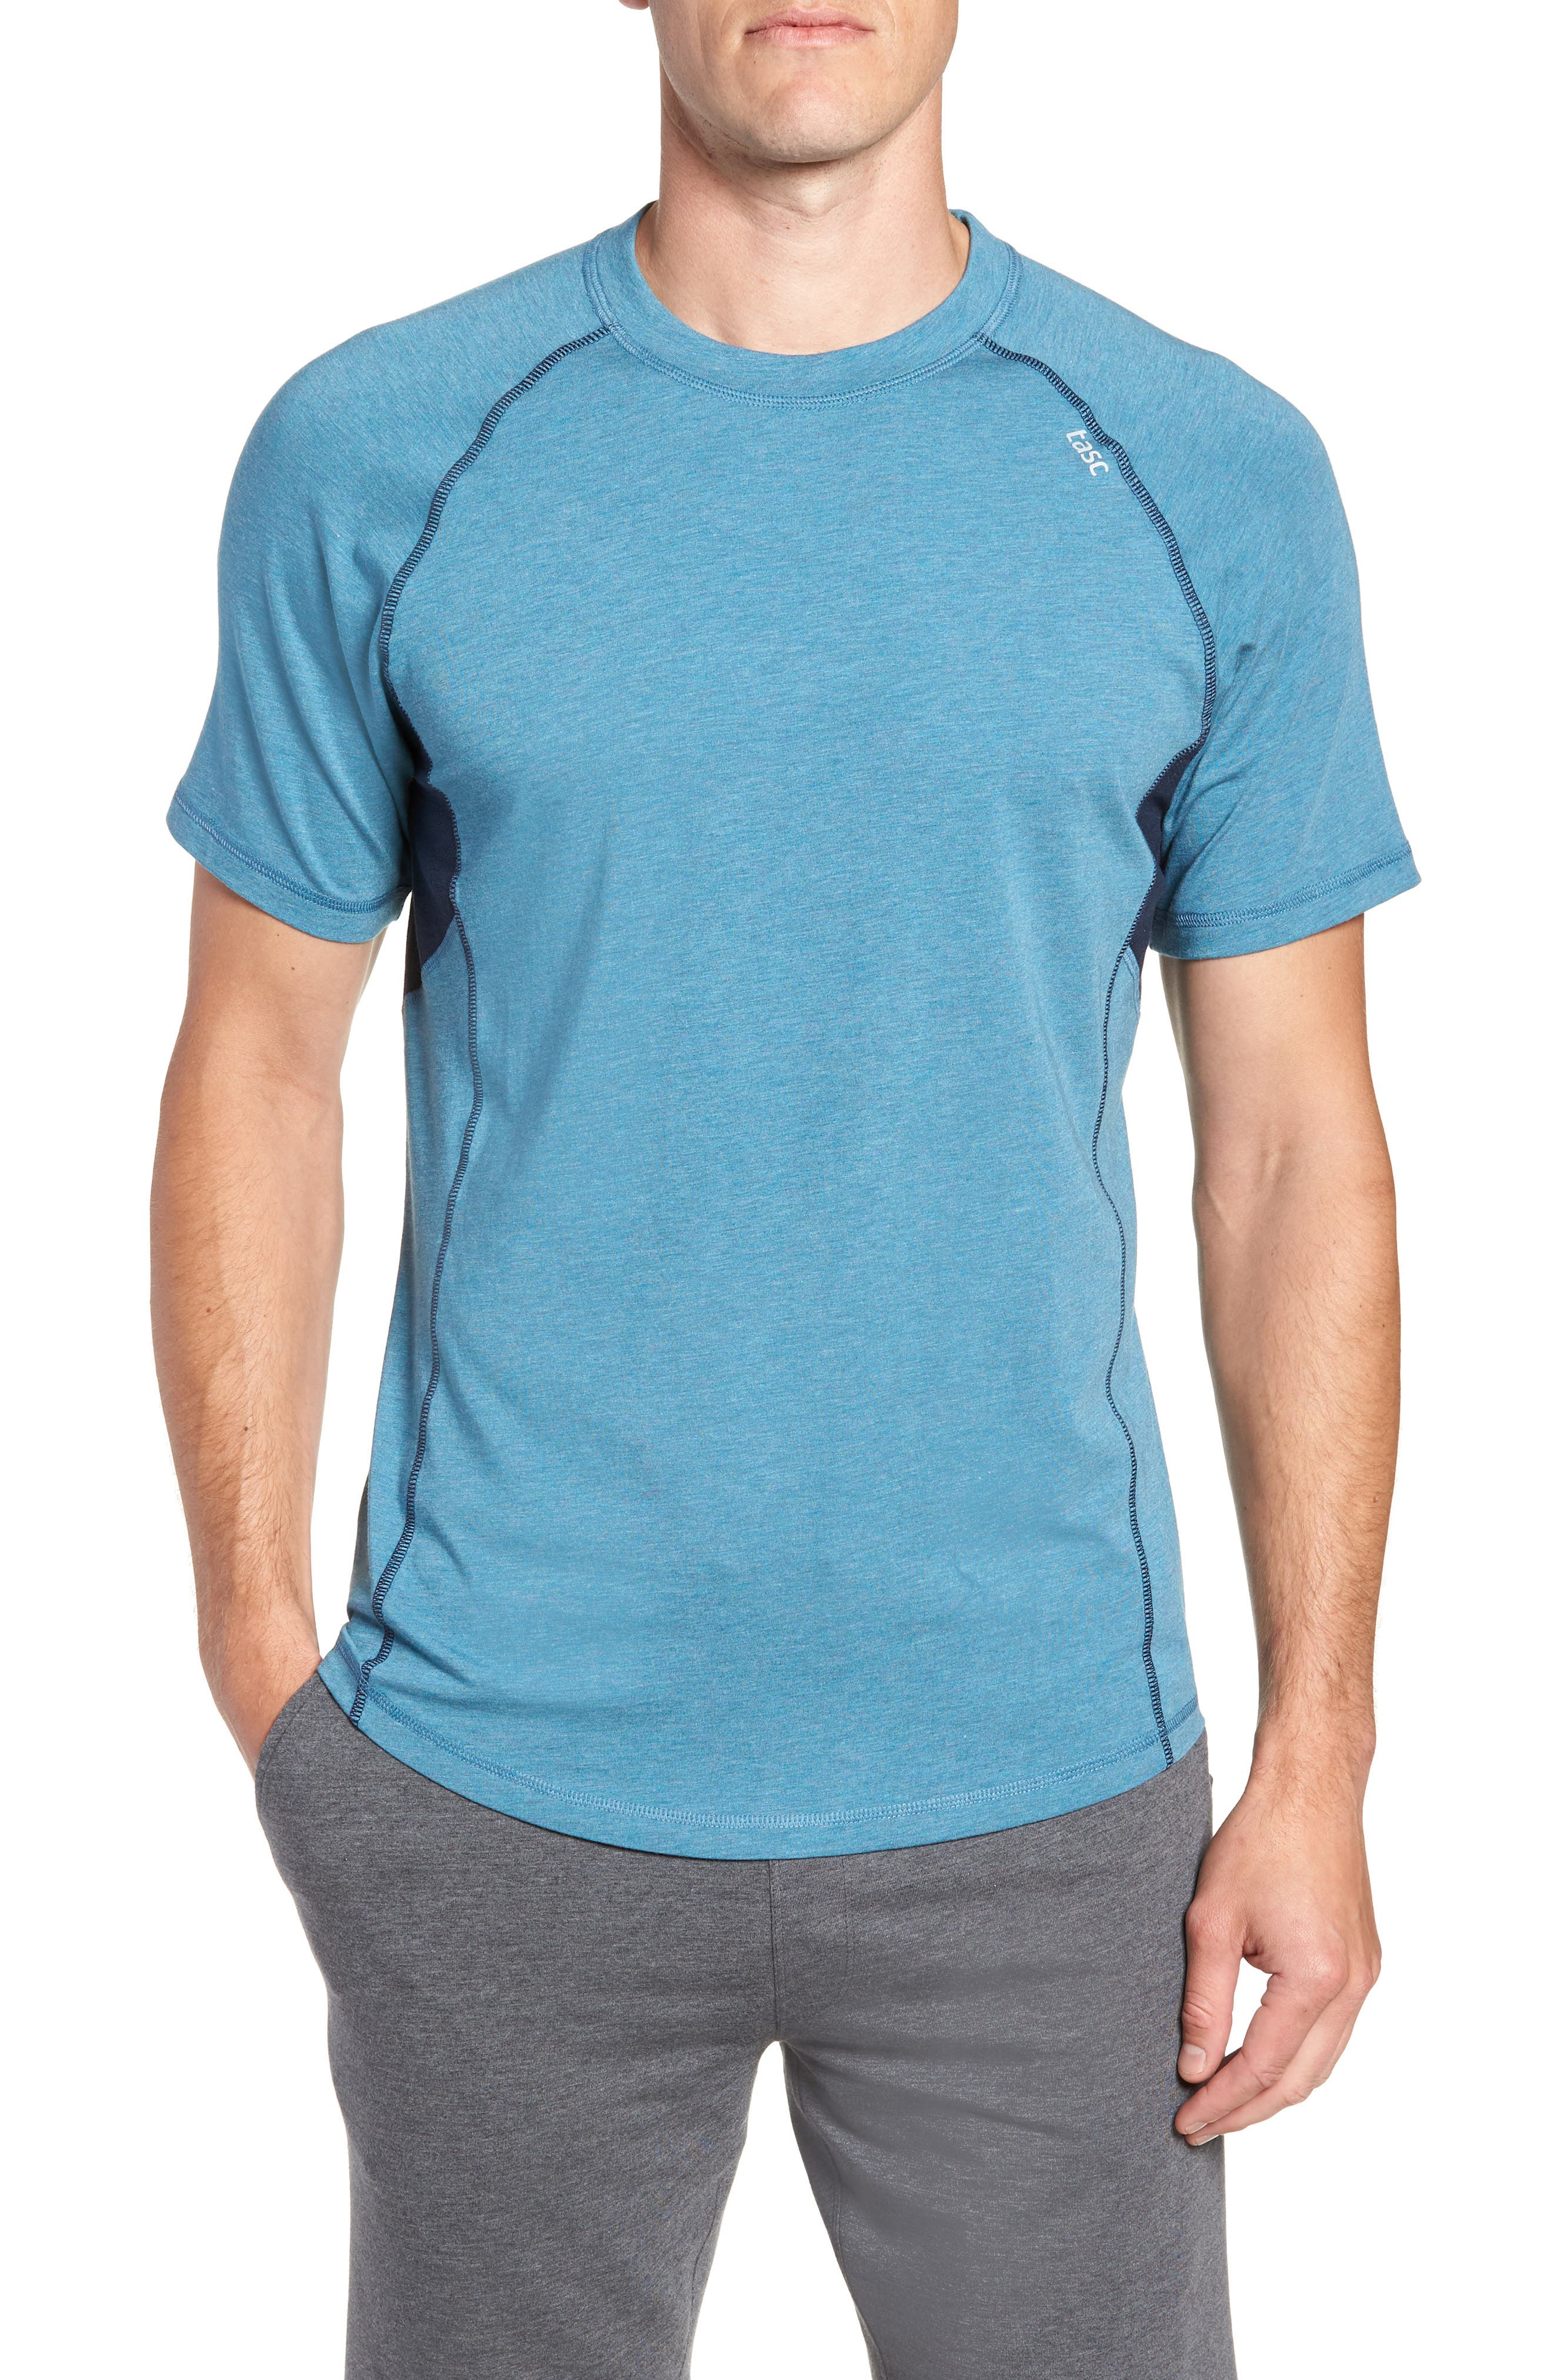 Charge II T-Shirt,                         Main,                         color, TRANQUILITY SEA HEATHER